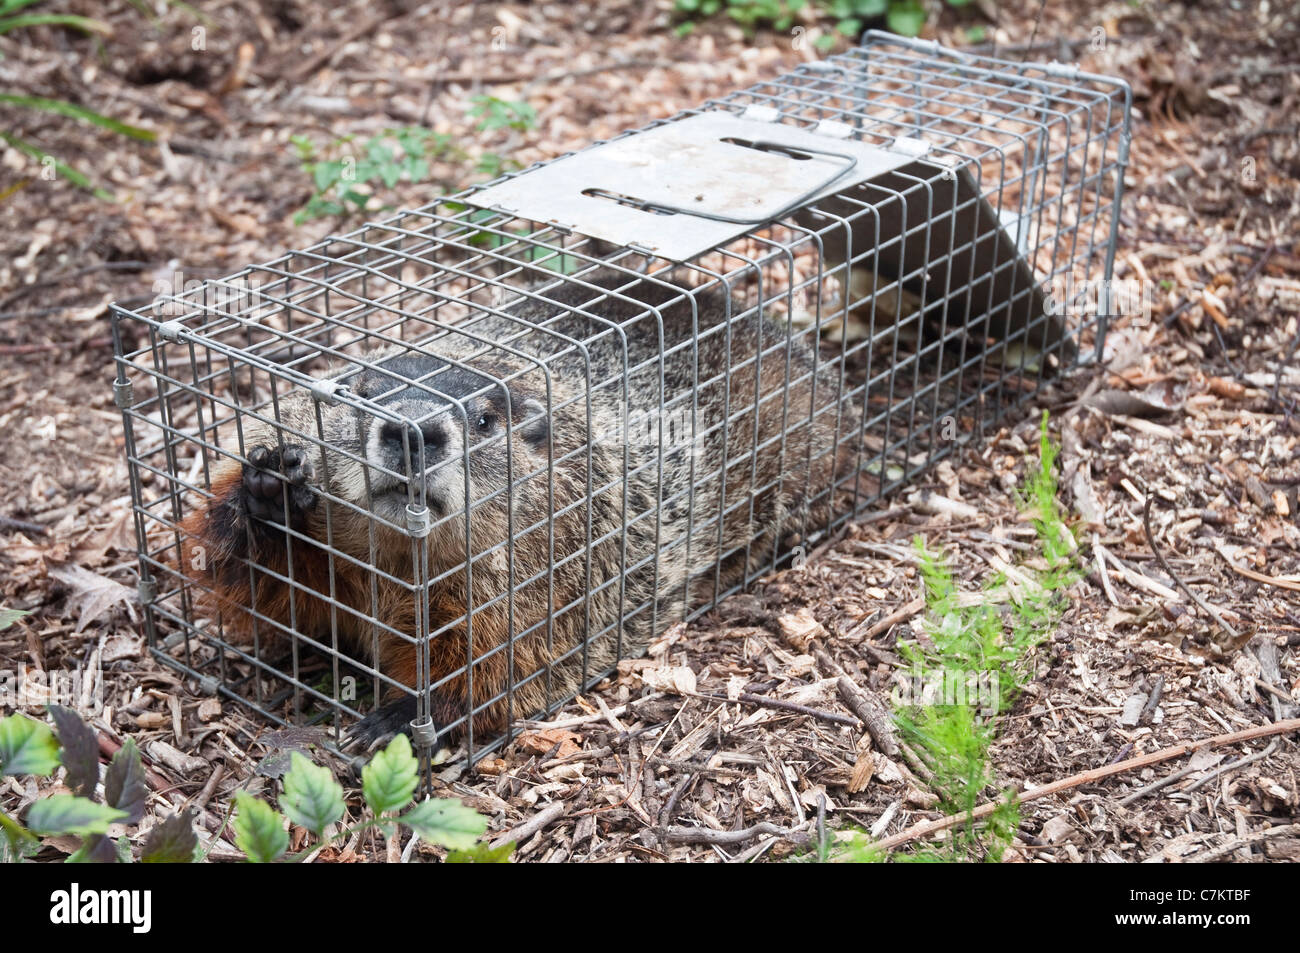 A large Groundhog or Woodchuck sitting in a humane / Have-A-Heart trap in a garden in New Jersey, USA. - Stock Image